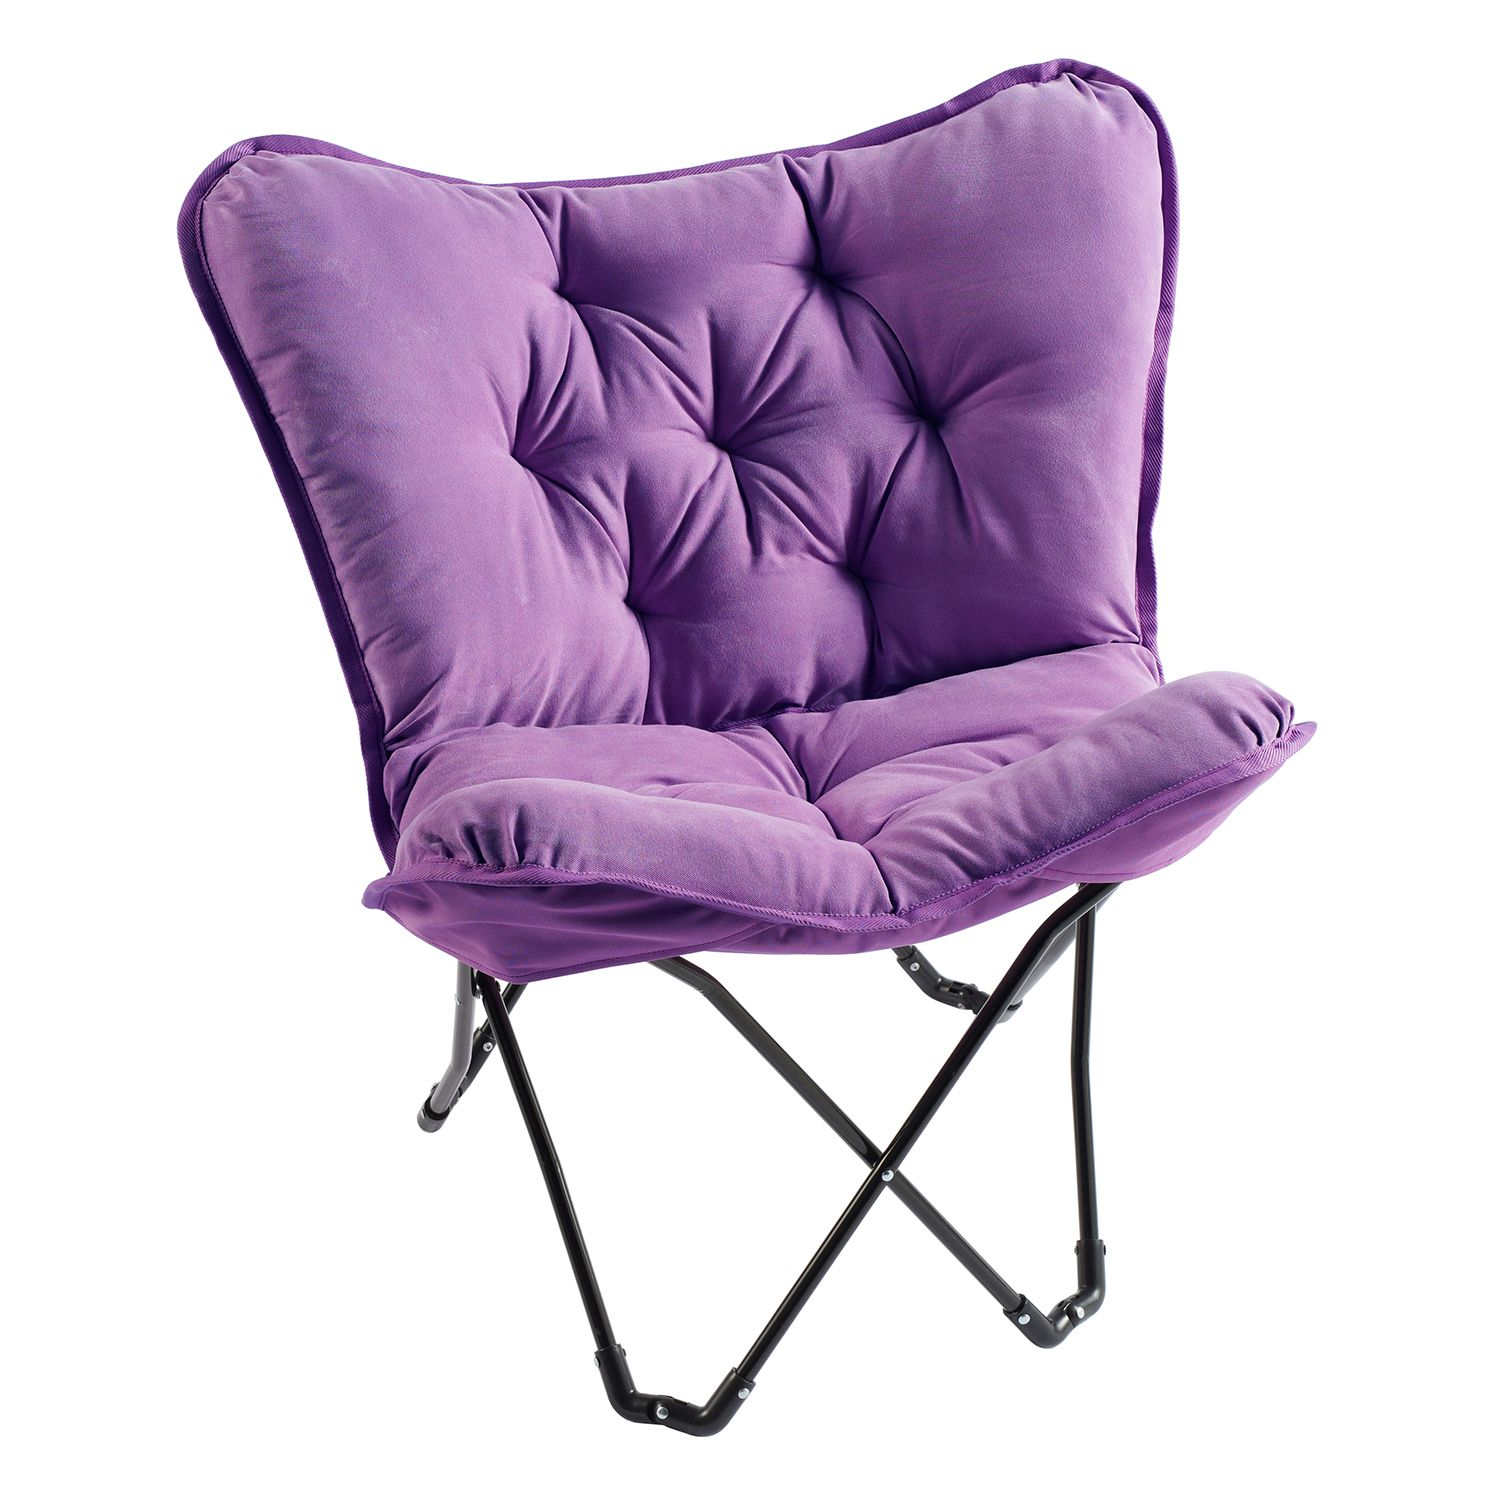 Simple By Design Memory Foam Butterfly Chair Multiple Colors From